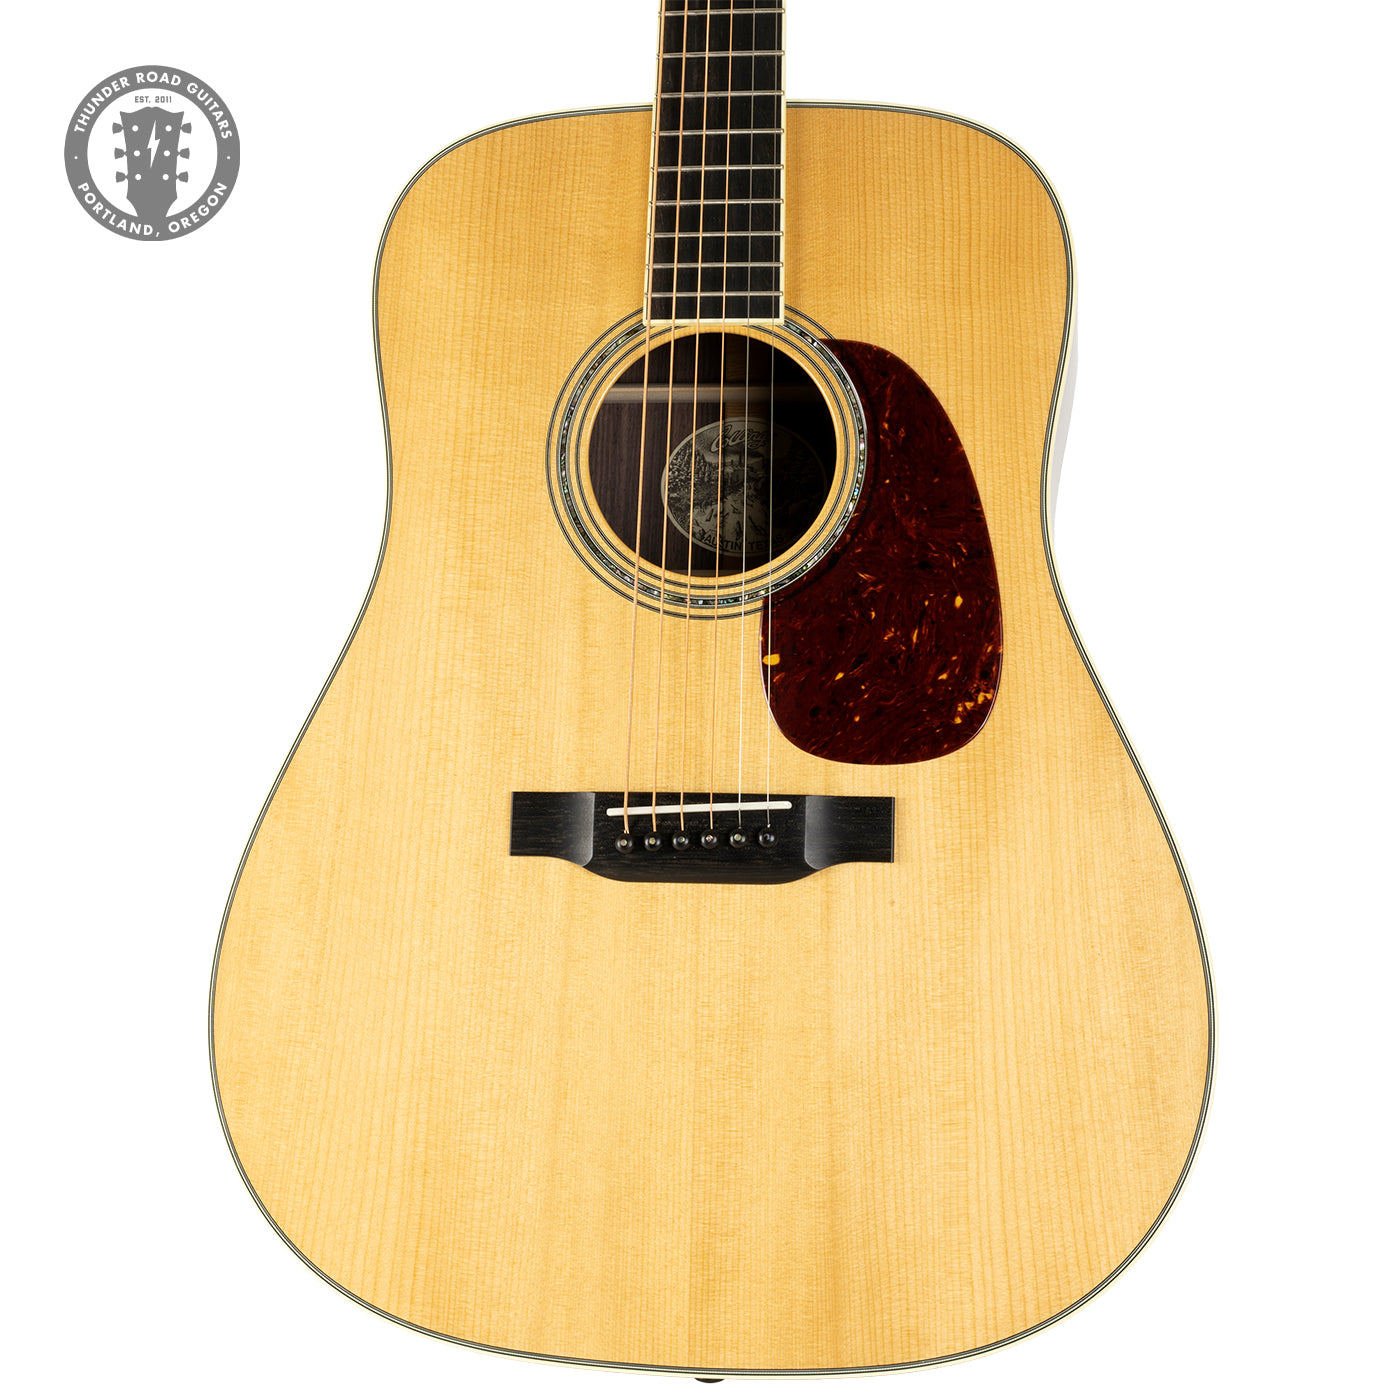 New Collings D3A Baked Top image 2